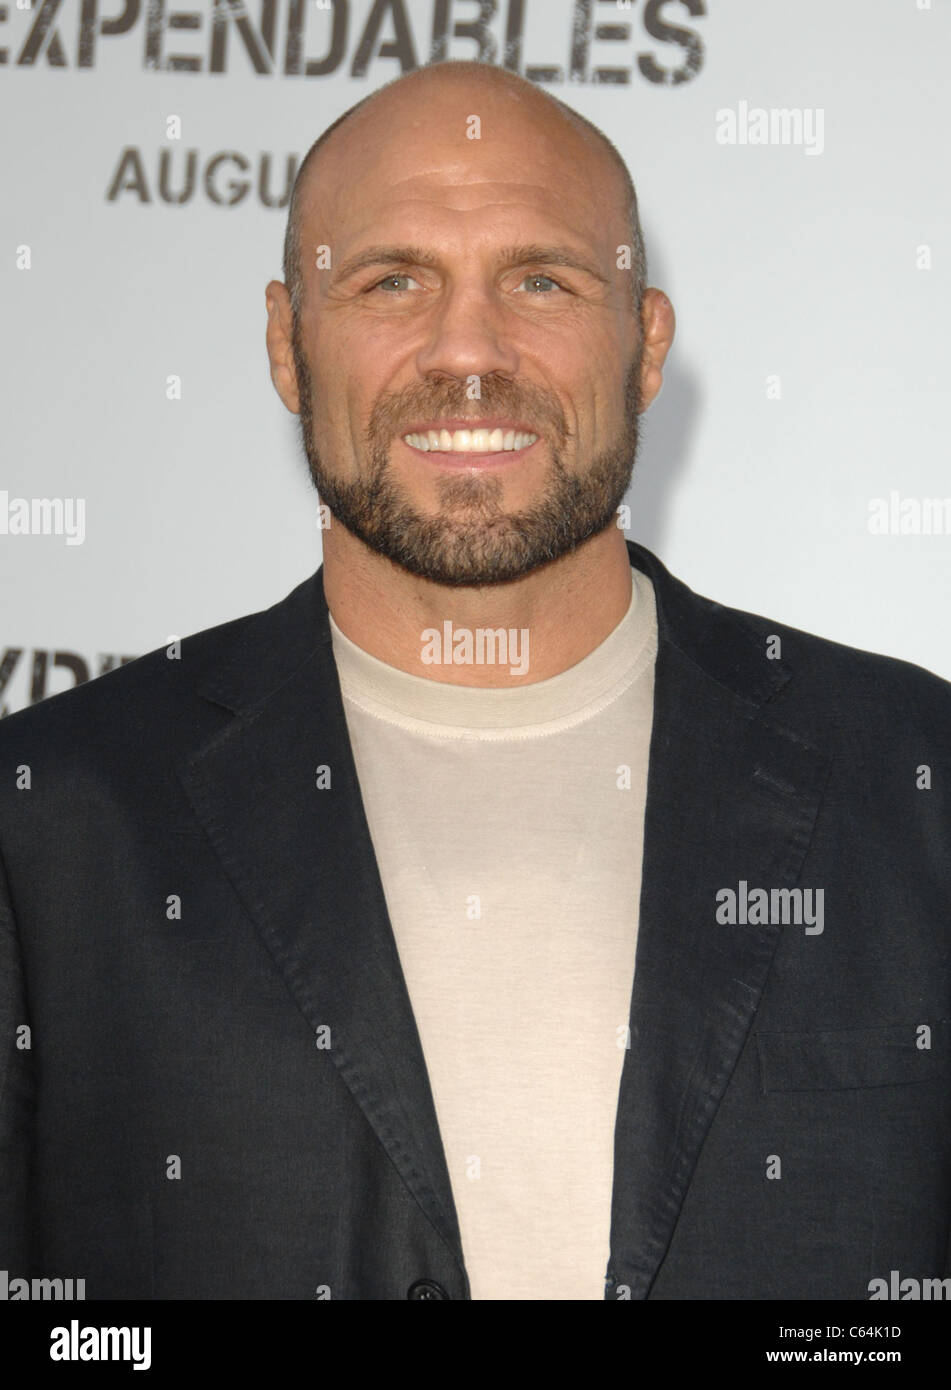 Randy Couture at arrivals for THE EXPENDABLES Premiere, Grauman's Chinese Theatre, Los Angeles, CA August 3, 2010. Stock Photo